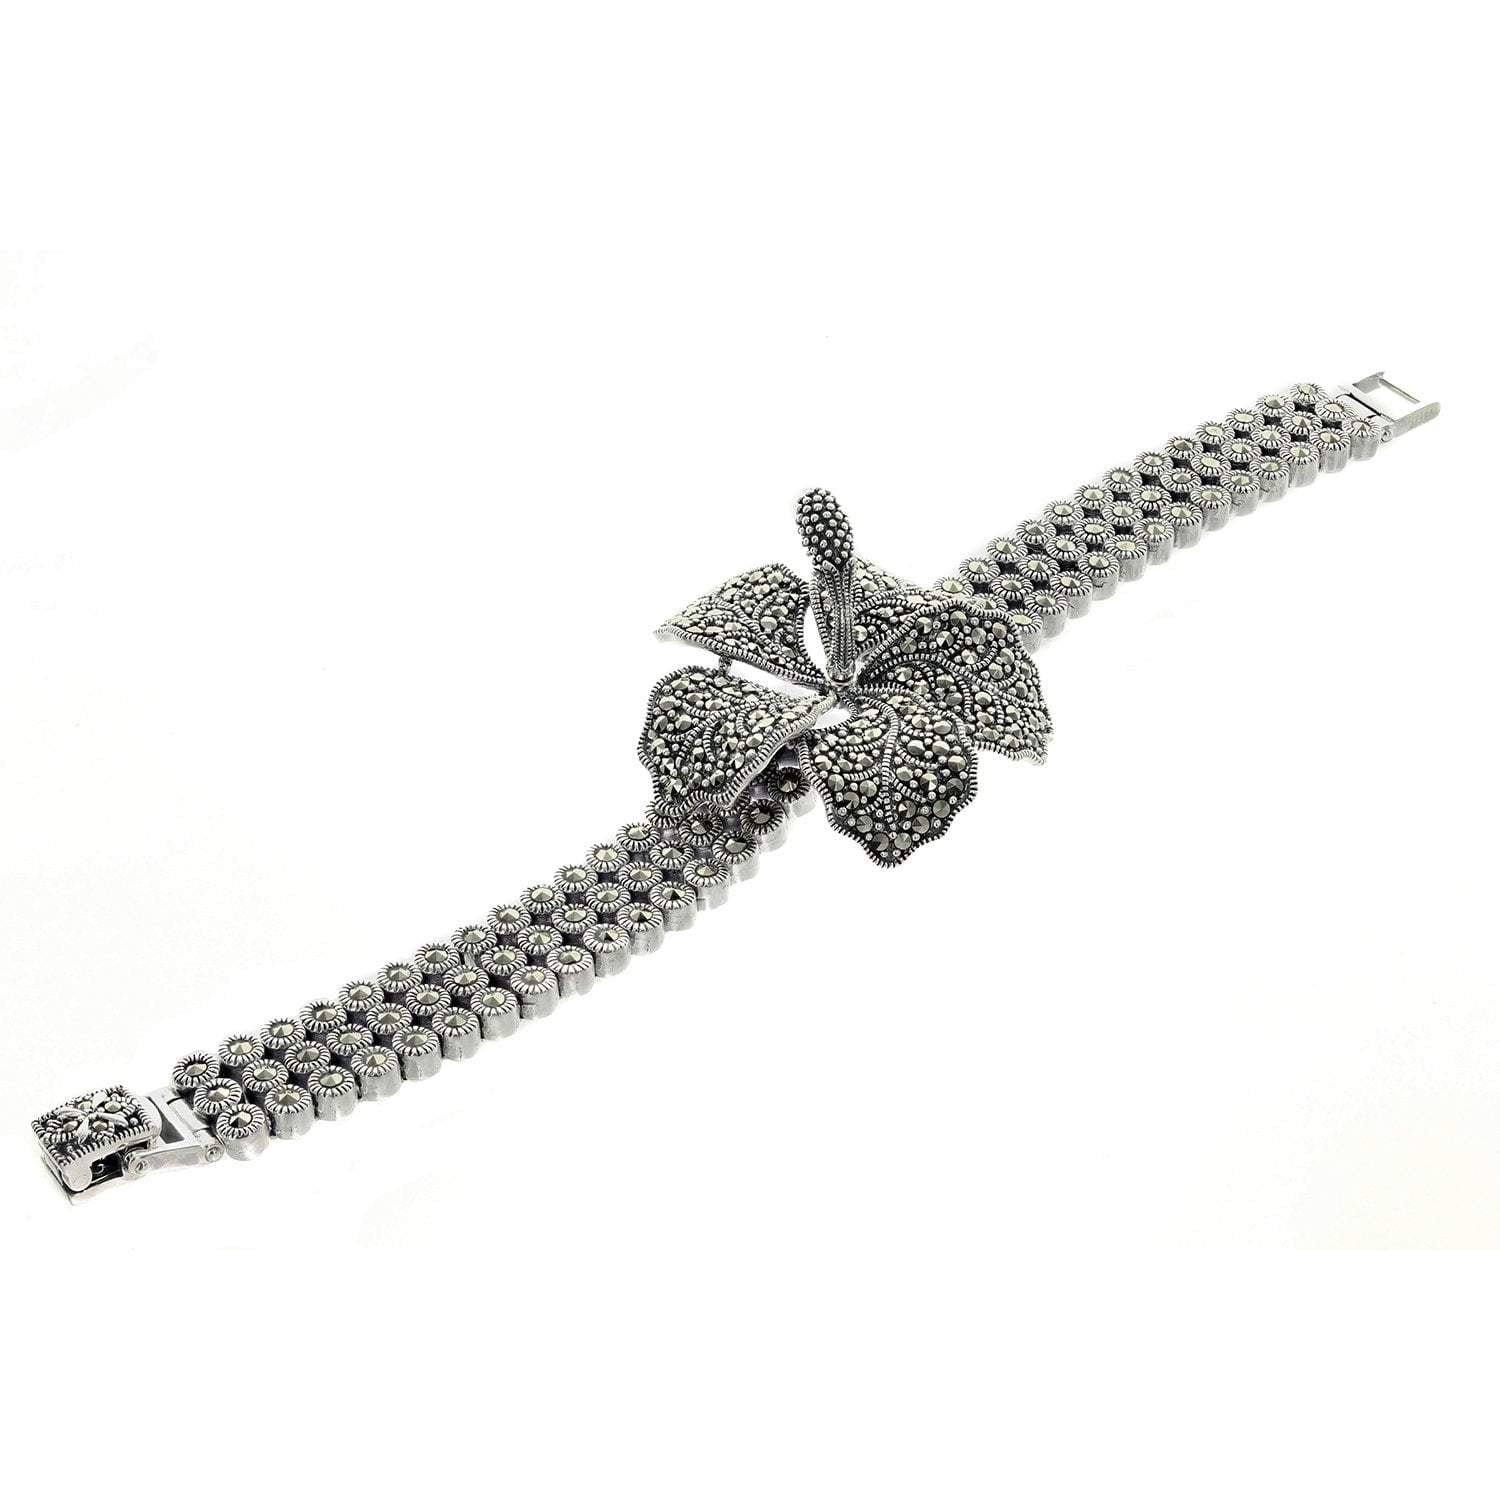 Marcasite Collection Bracelets Black / White Marcasite Flower Bracelet in Sterling Silver